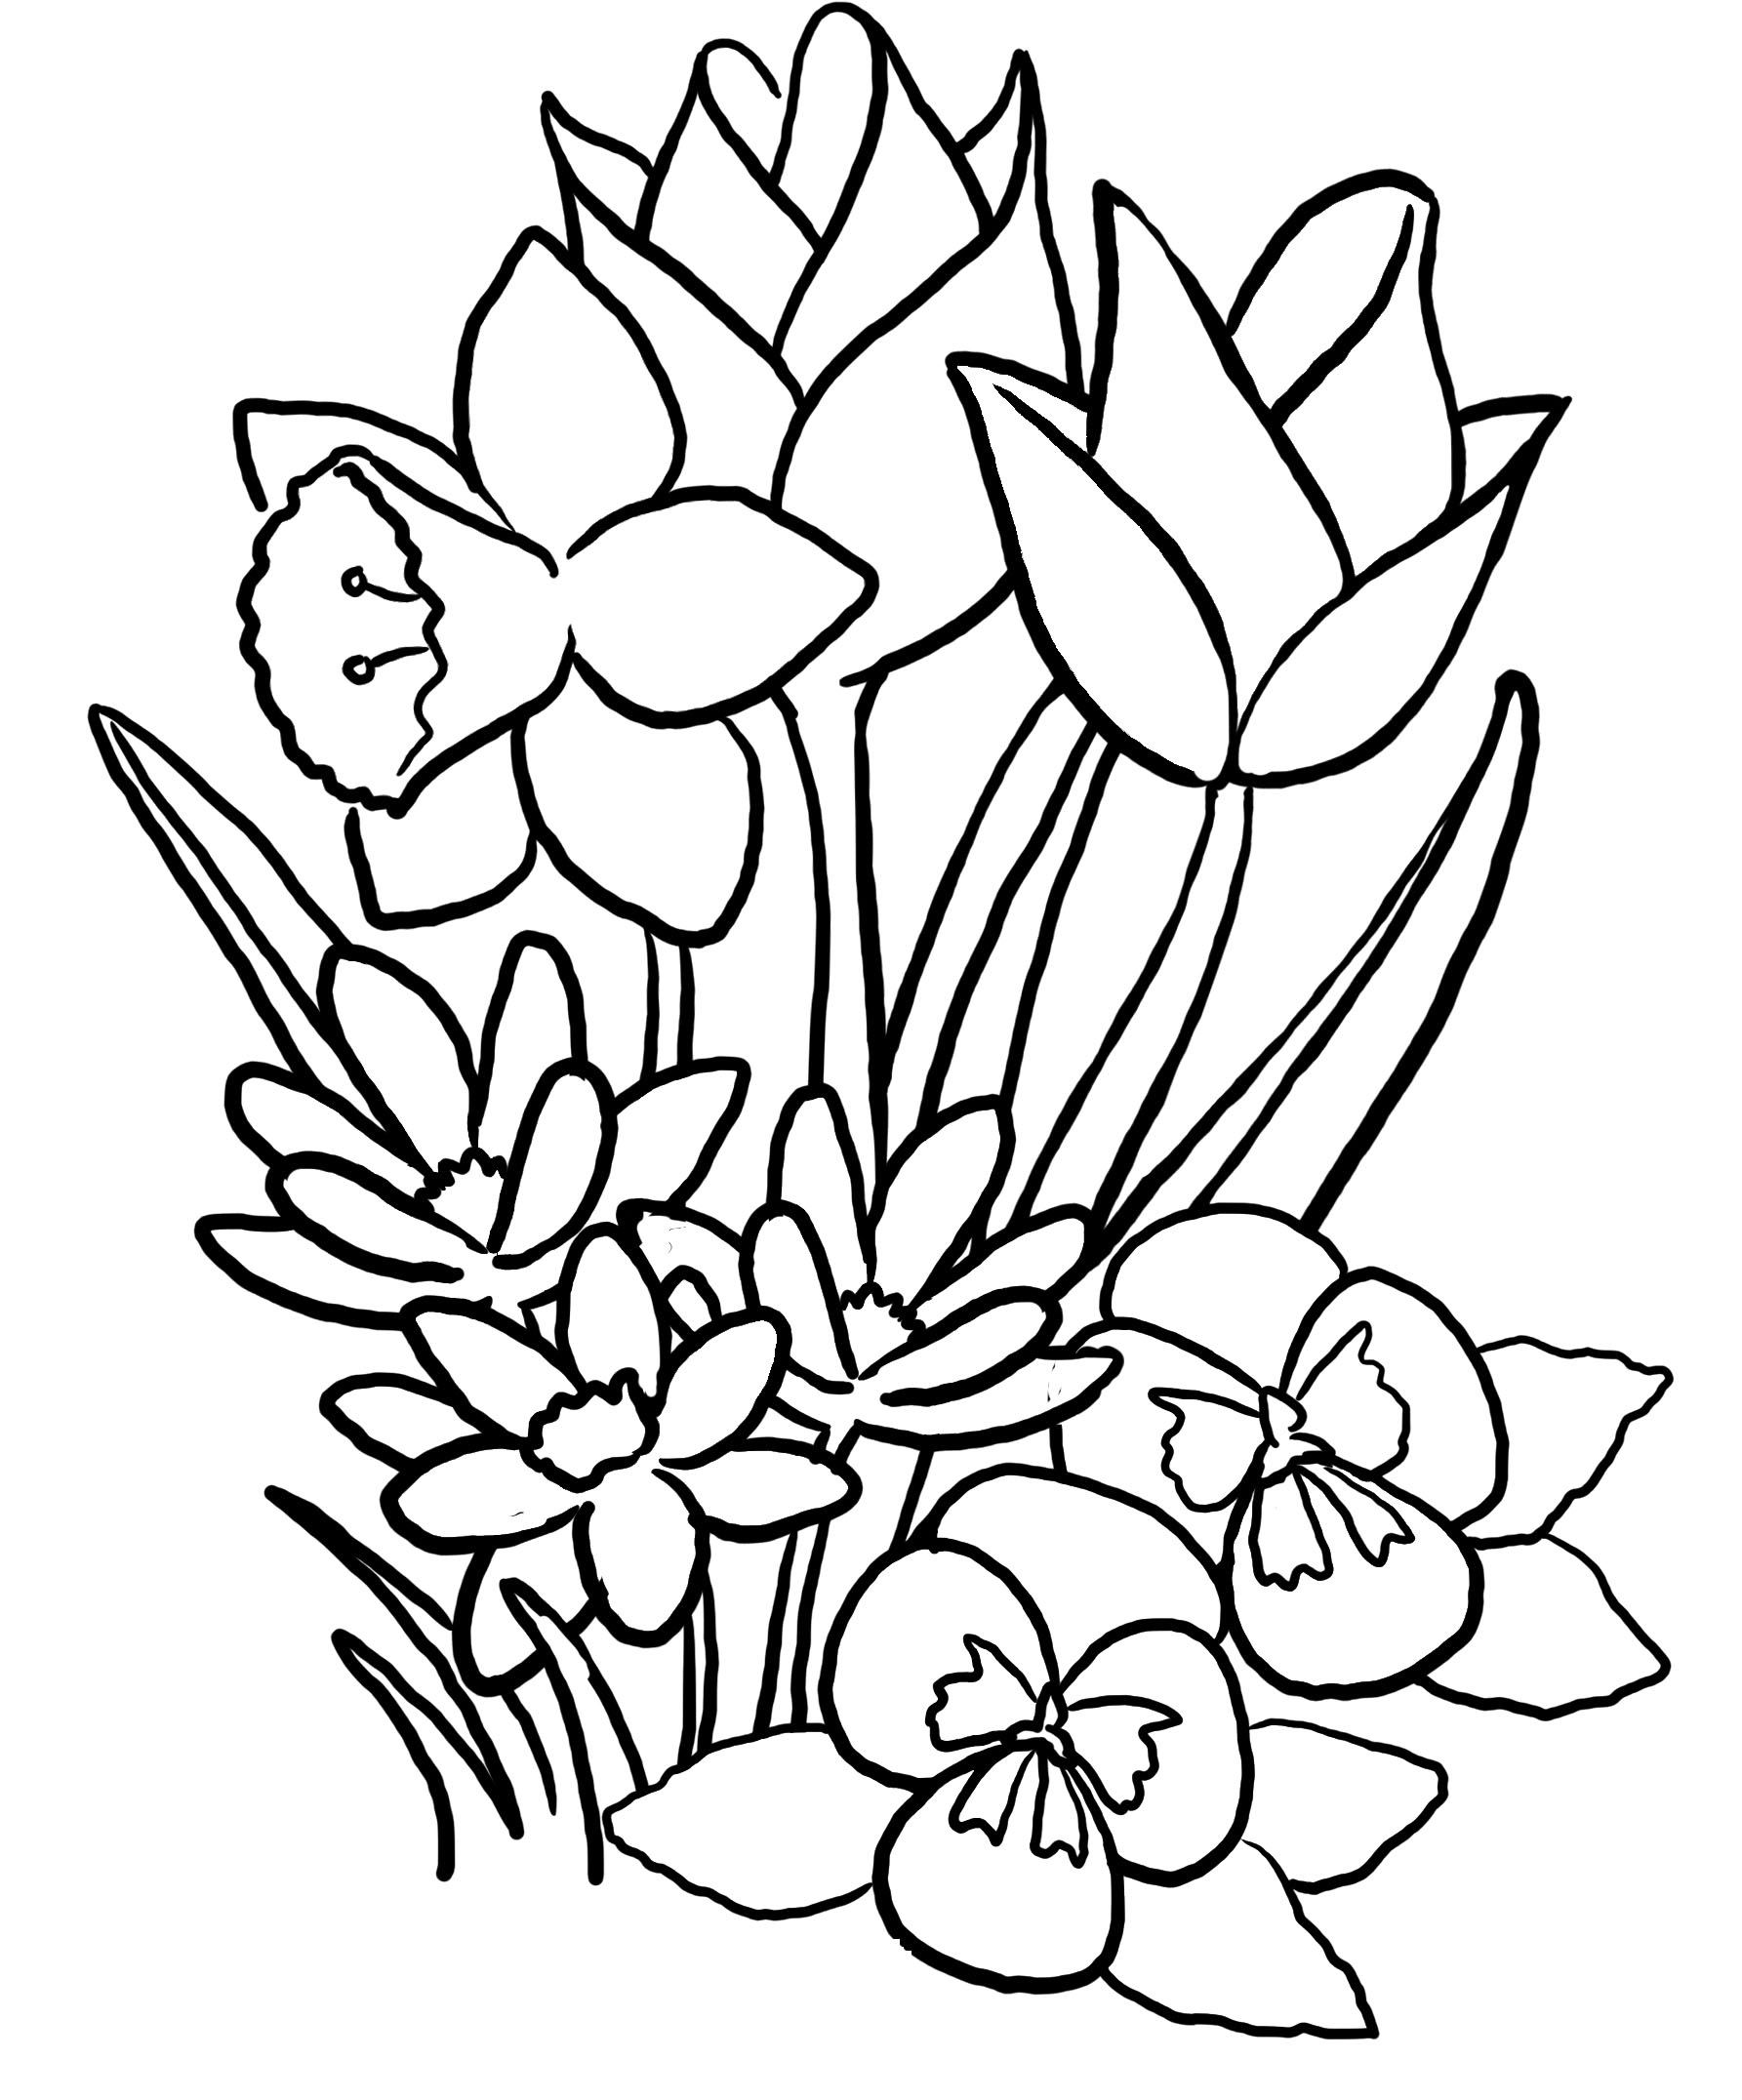 1785x2152 Surprising Printable Adult Coloring Pages Flowers With Free